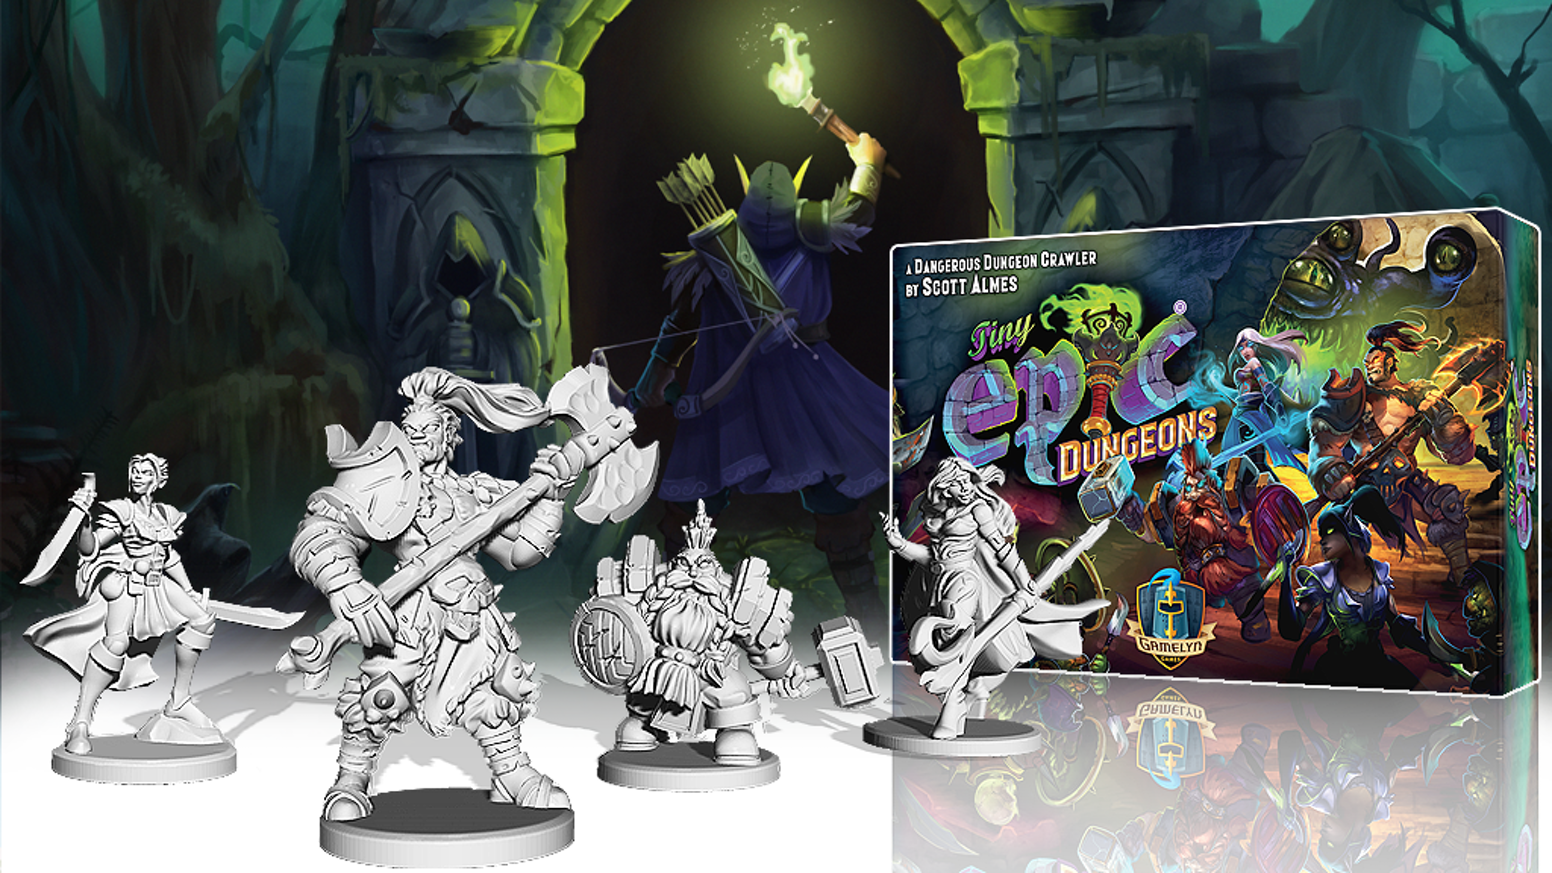 Tiny Epic Dungeons, still available through late pledges.